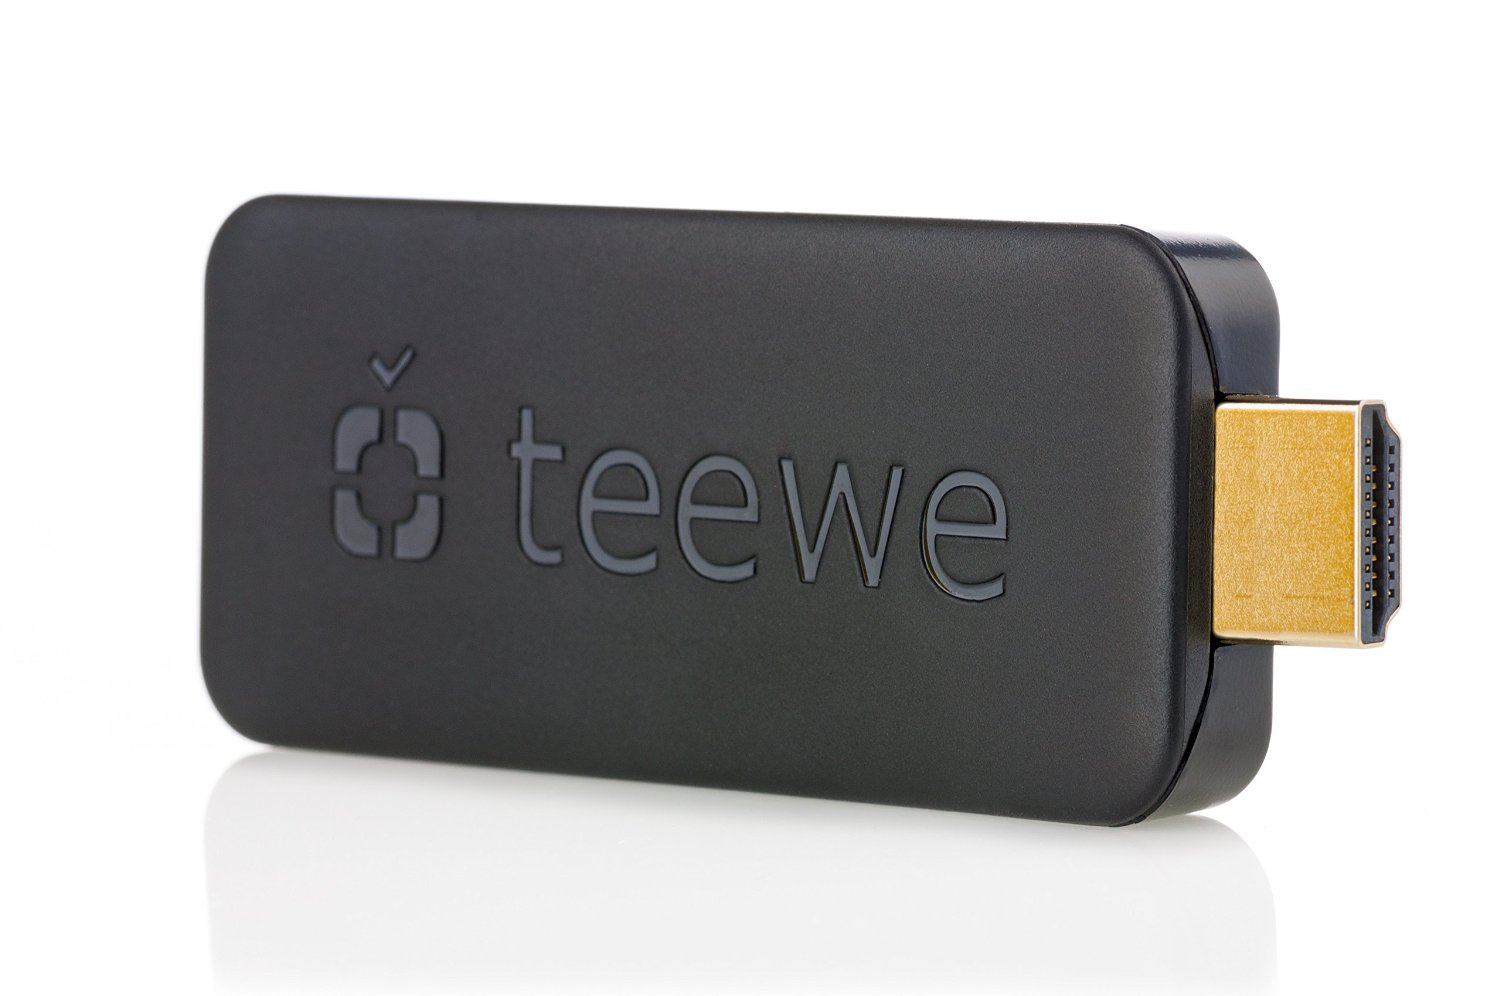 Teewe 2 Wireless HDMI Media Streaming Player